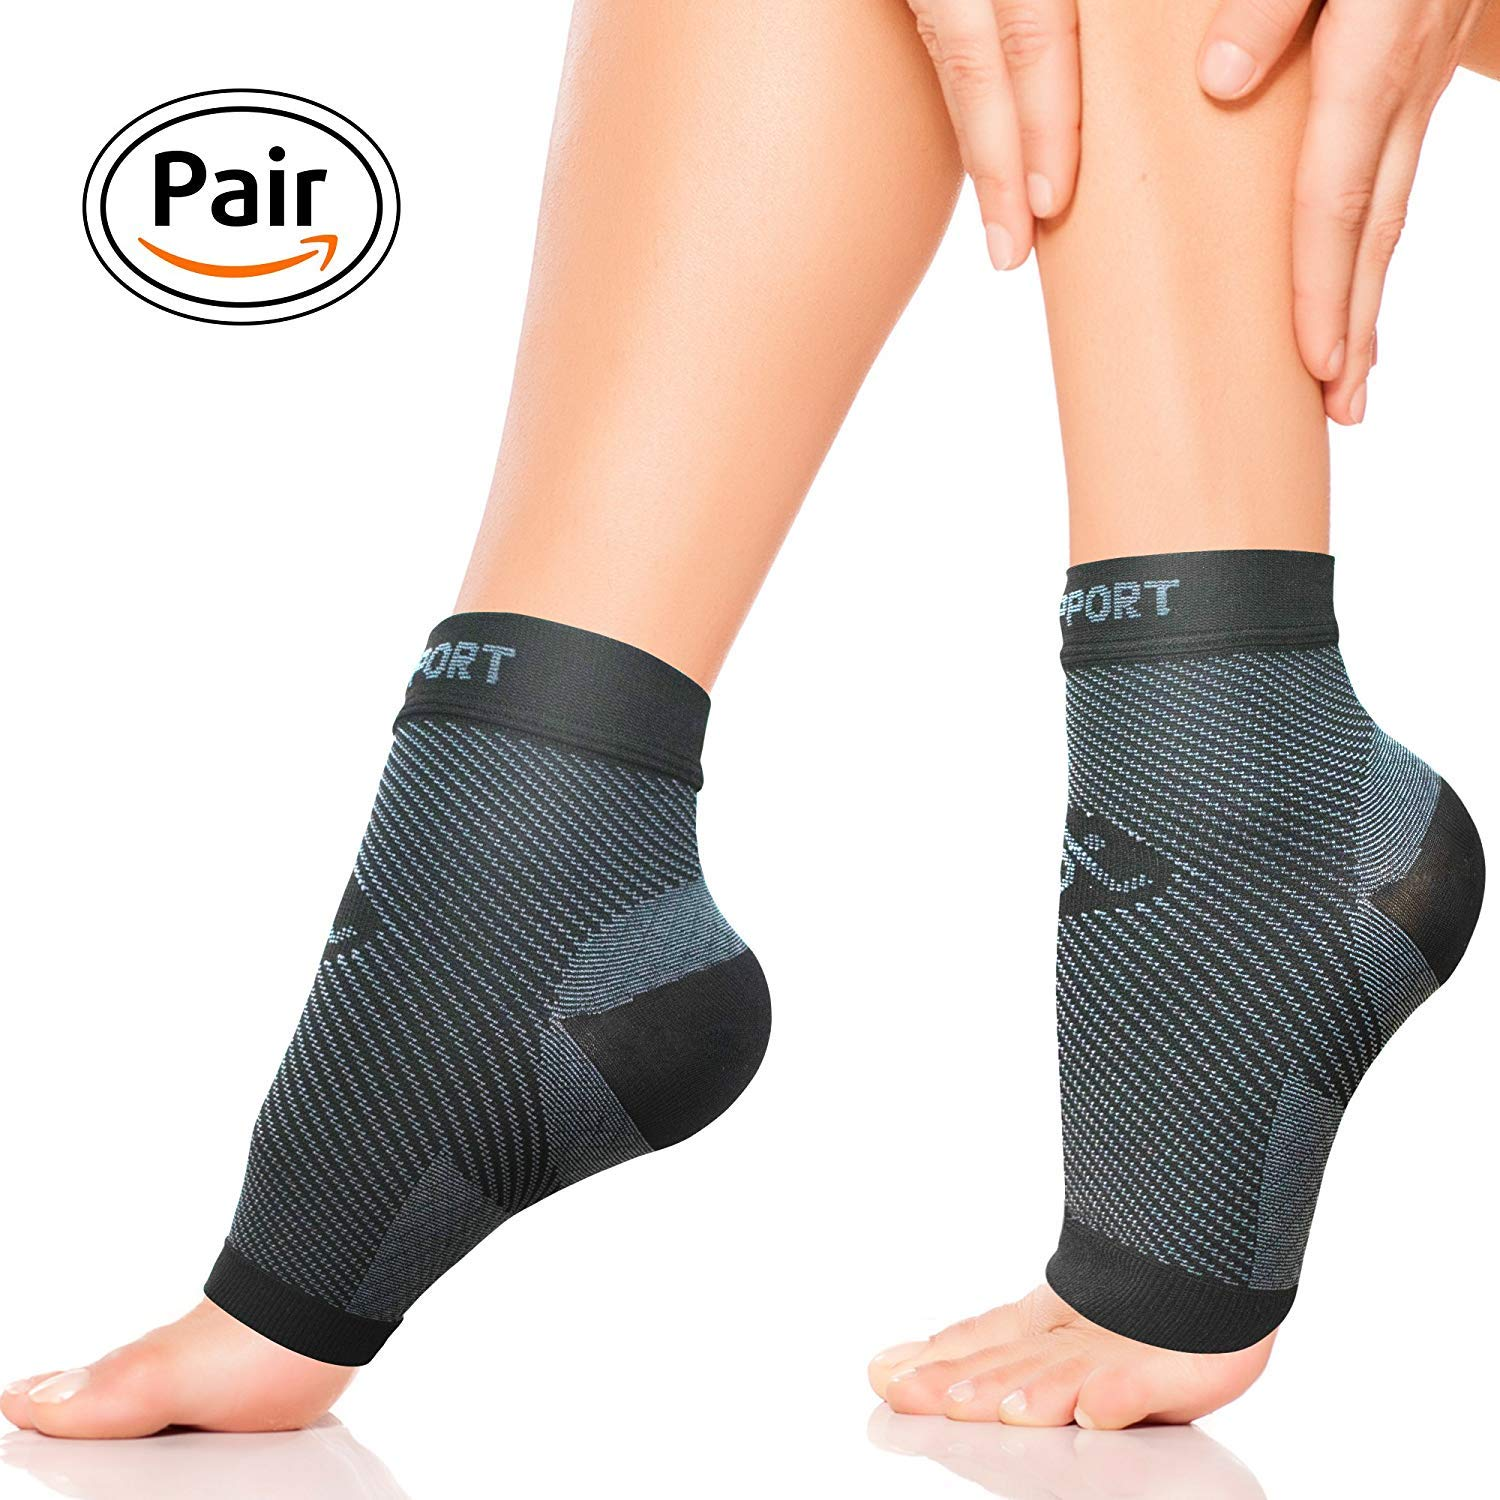 Plantar Fasciitis Socks for Men and Women - Foot Compression Sleeves for Arch Pain - Heel Spur - Achilles Tendon Pain - Foot Sweling by PURE SUPPORT.